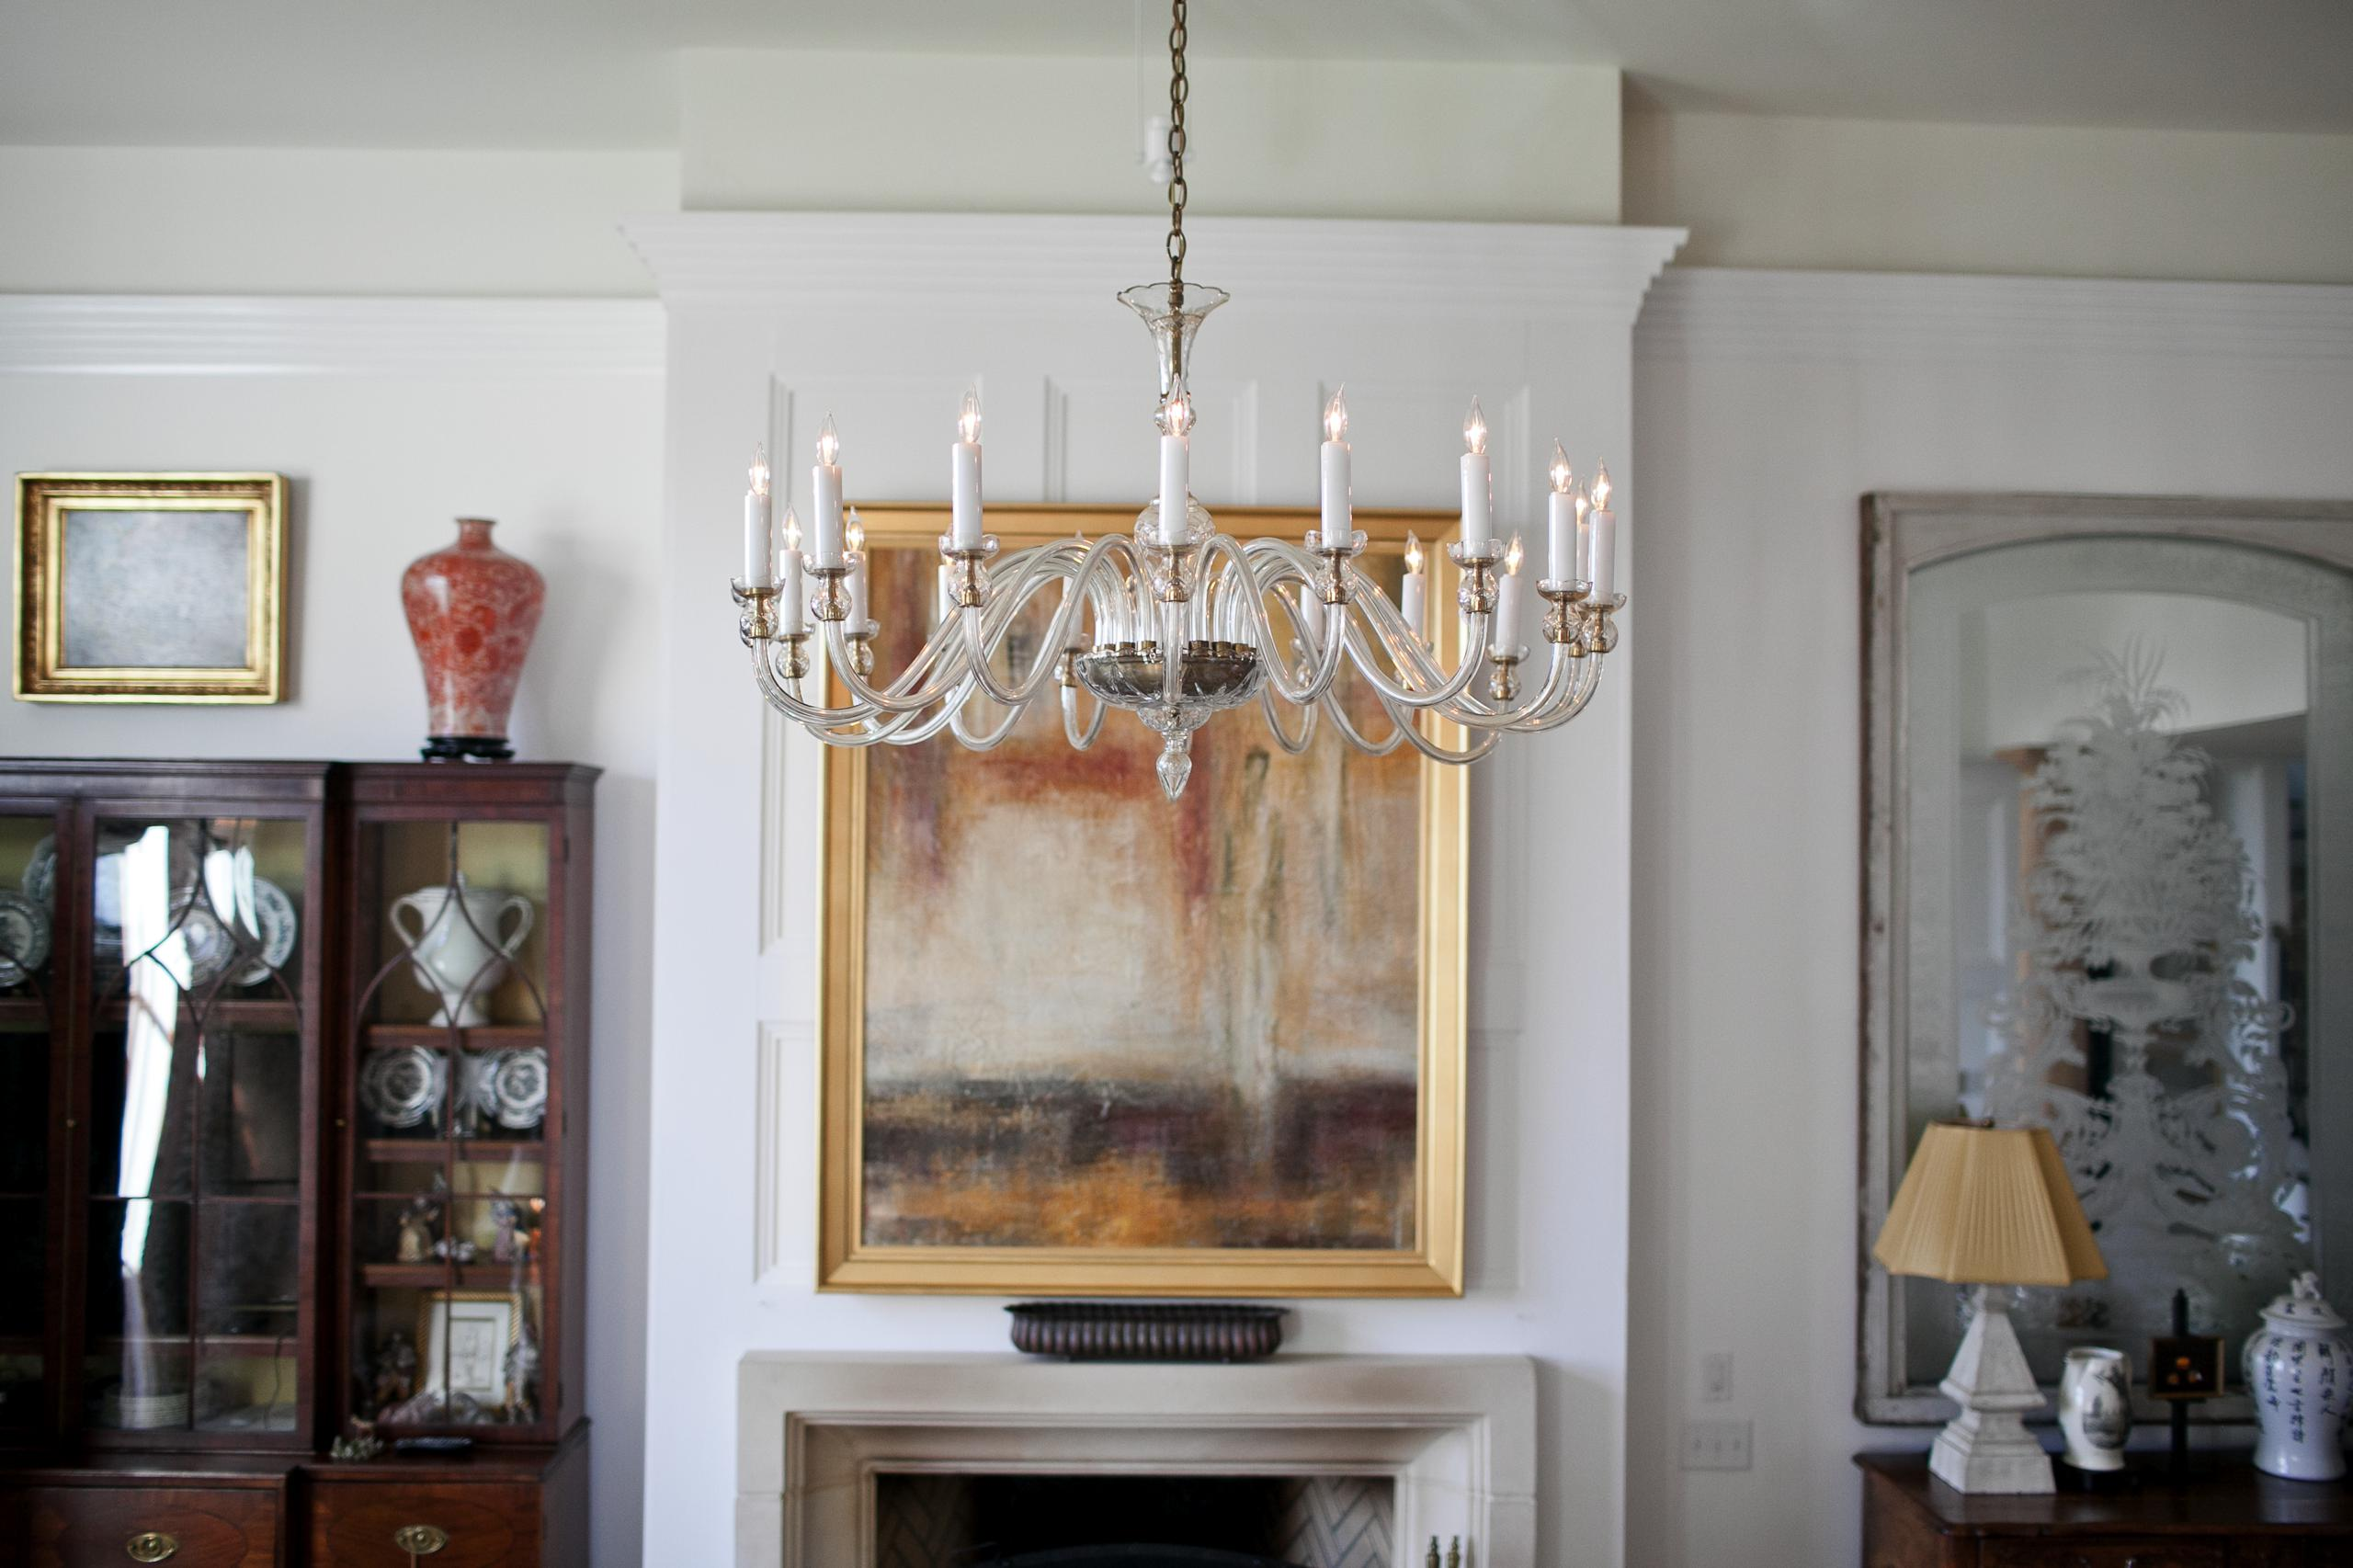 antique rarity vintage full chandelier brass sale for ceiling chandeliers crystal lustre lamp in marvellous image old and made